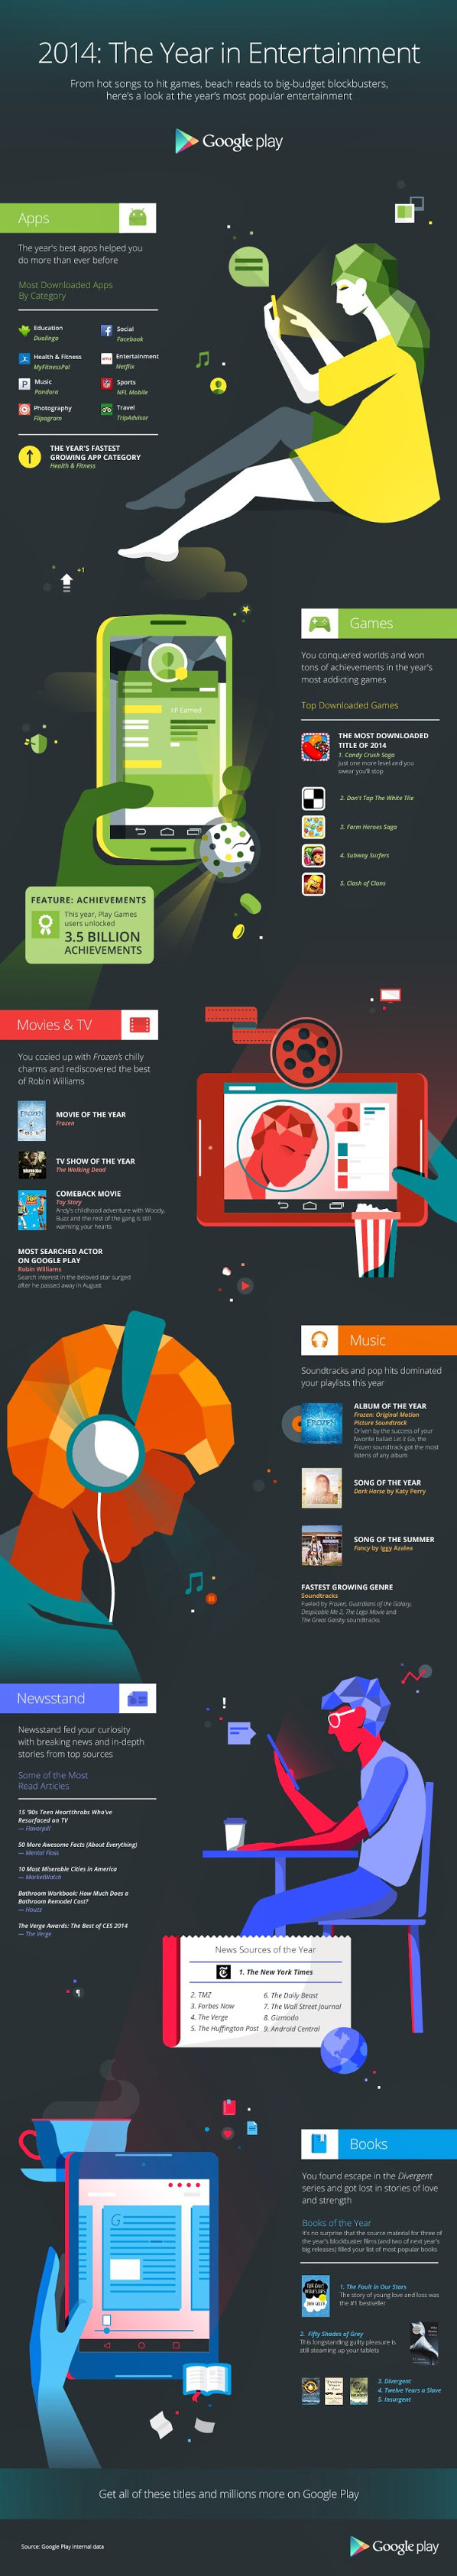 Google Play 2014 infographic